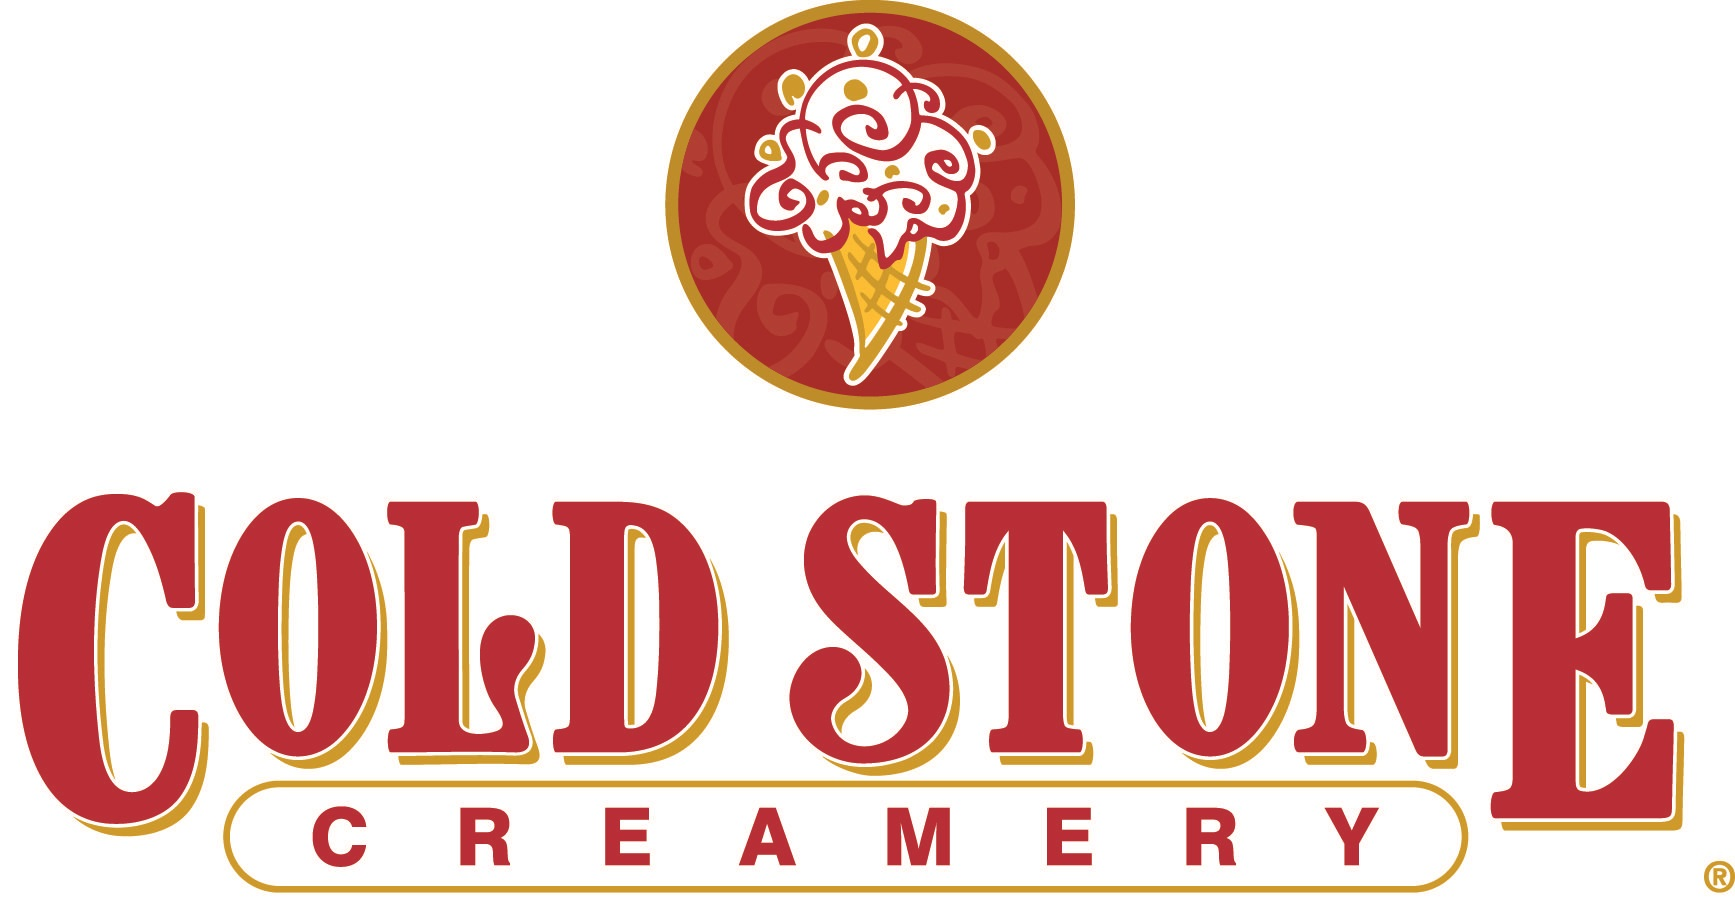 Cold Stone E-Gift Card 38% off $50 Card Gift Card Image